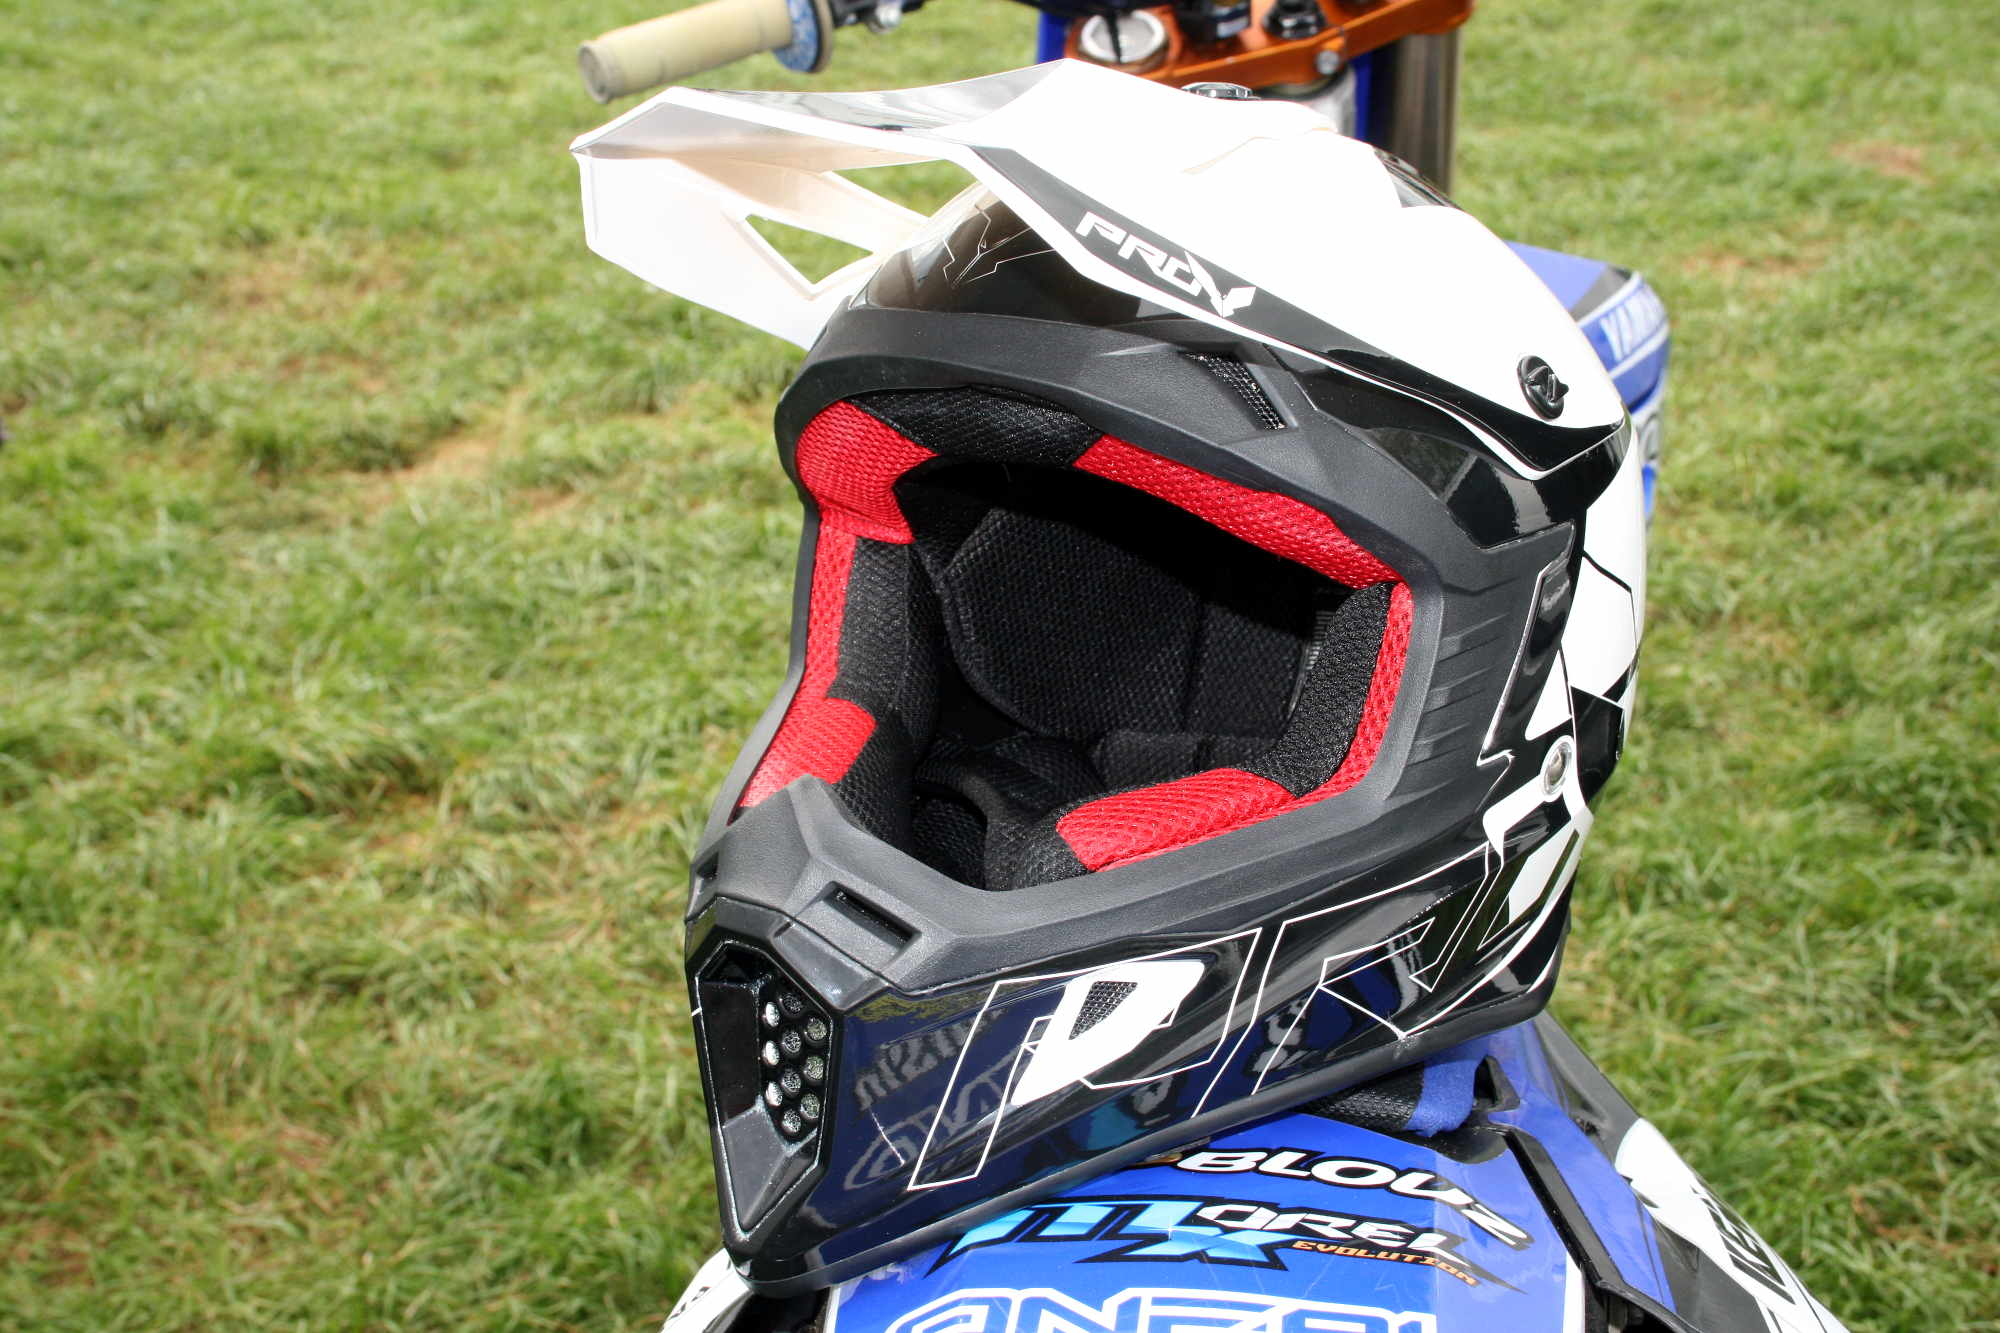 Casque cross Prov Skud